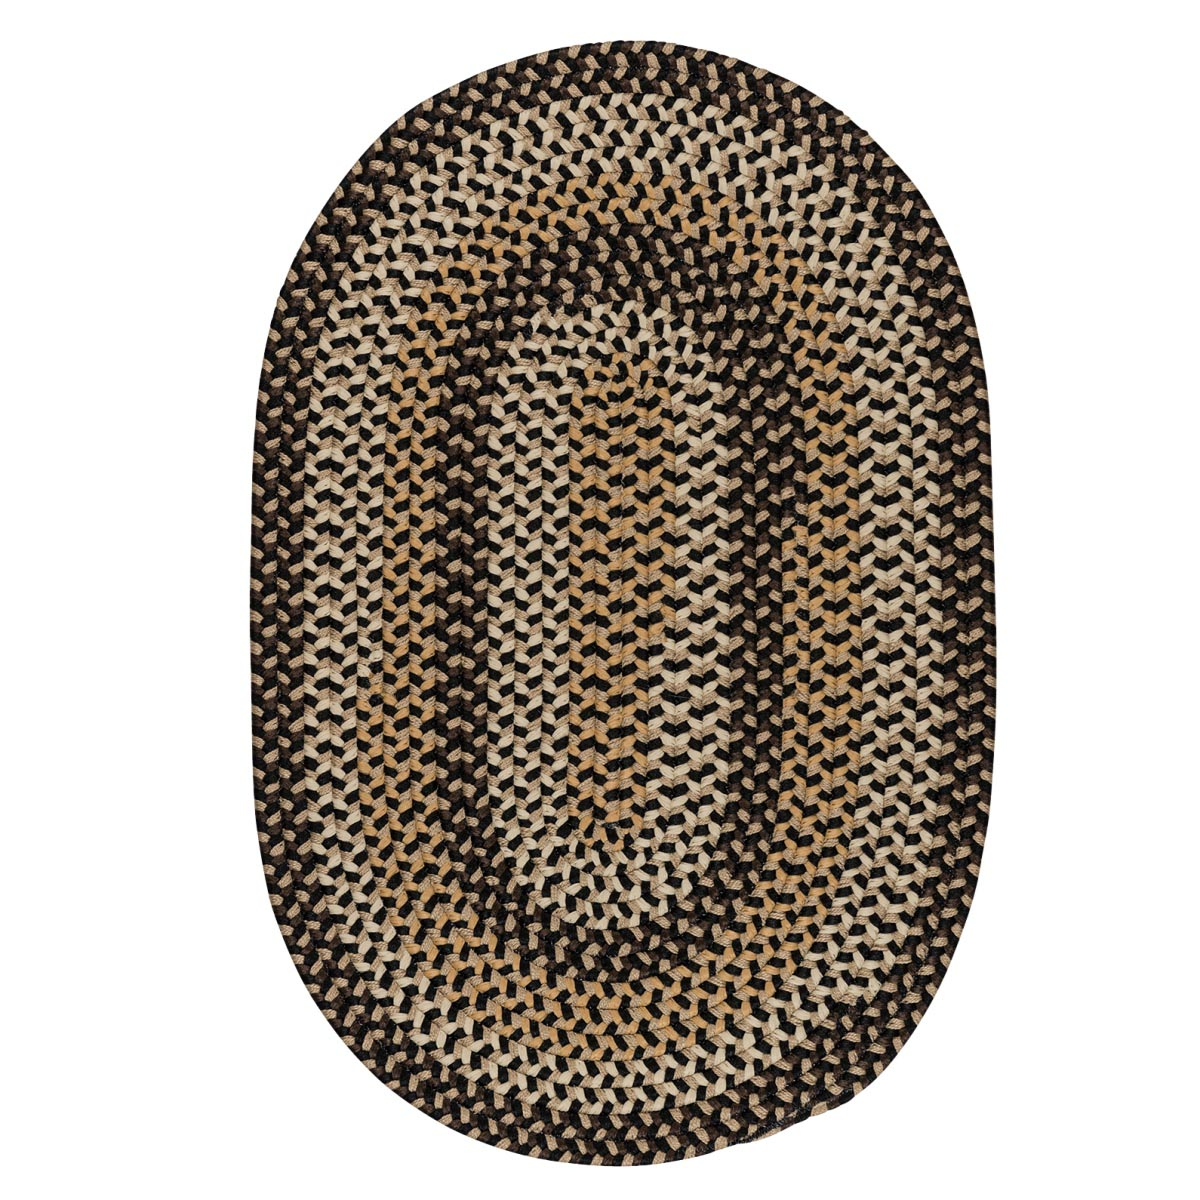 Brook Farm Blackberry Outdoor Braided Oval Rugs